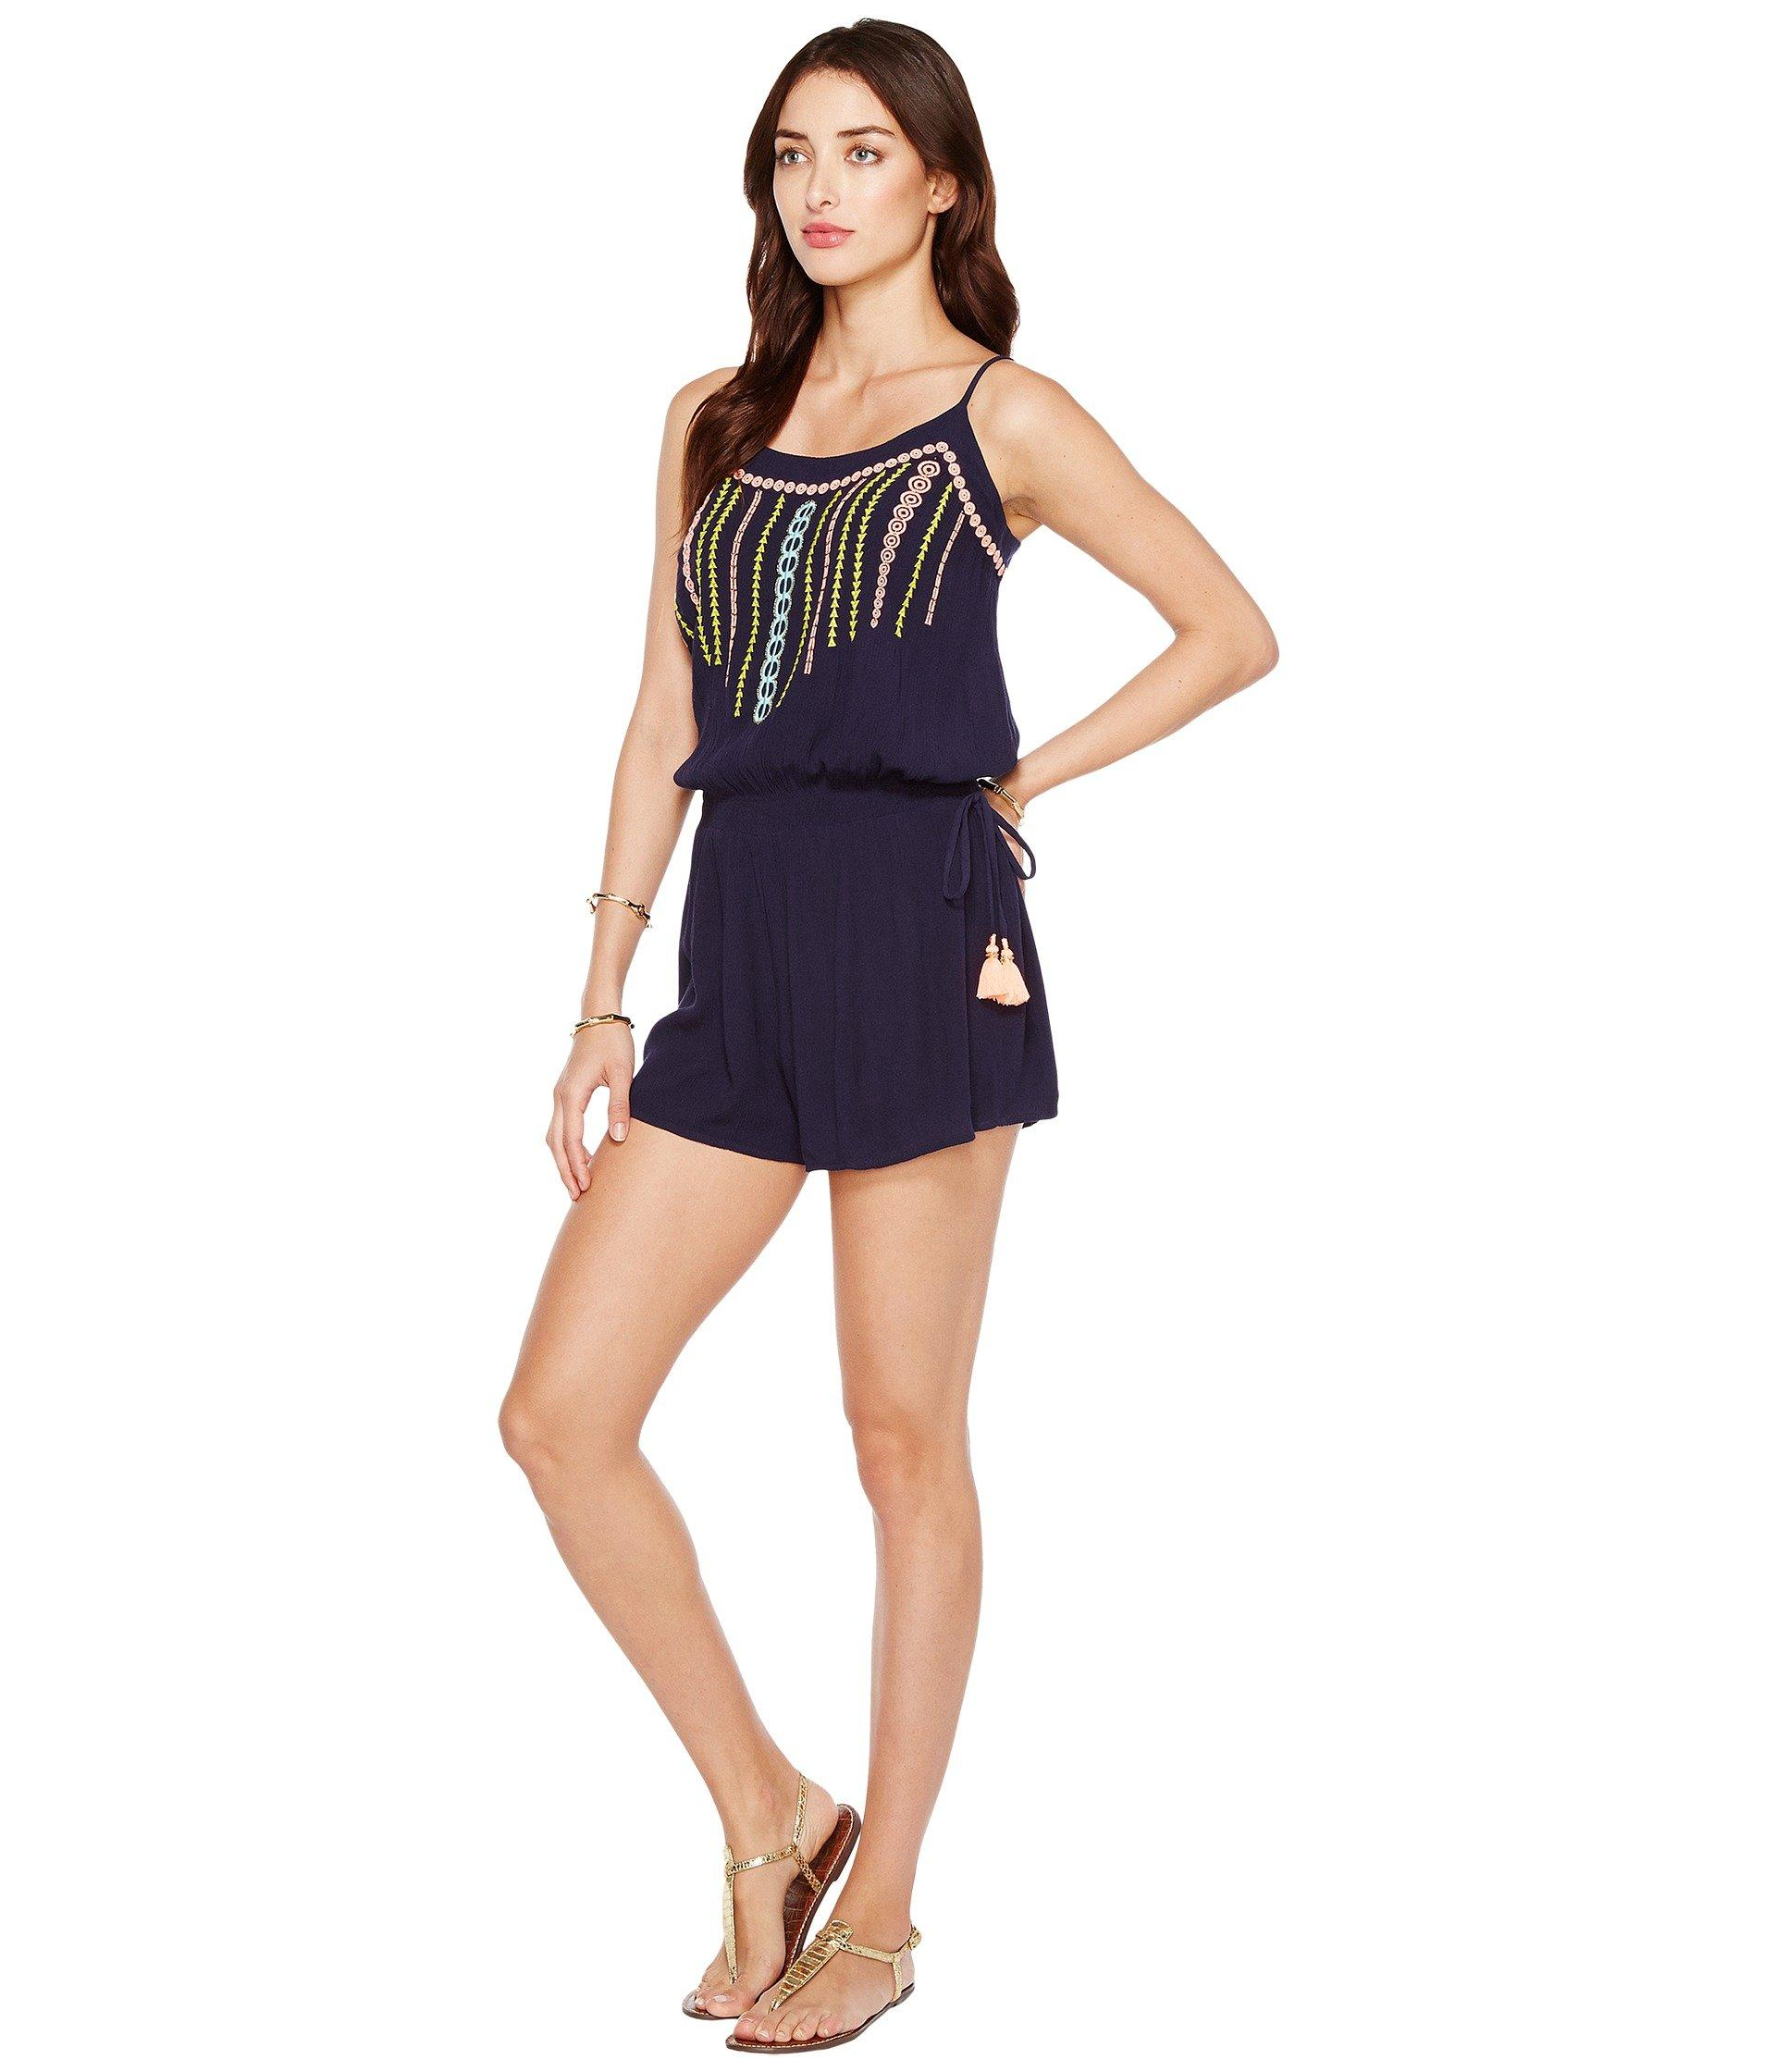 2b6689e8d46 Lyst - Lilly Pulitzer Beeler Romper in Blue - Save 50.0%